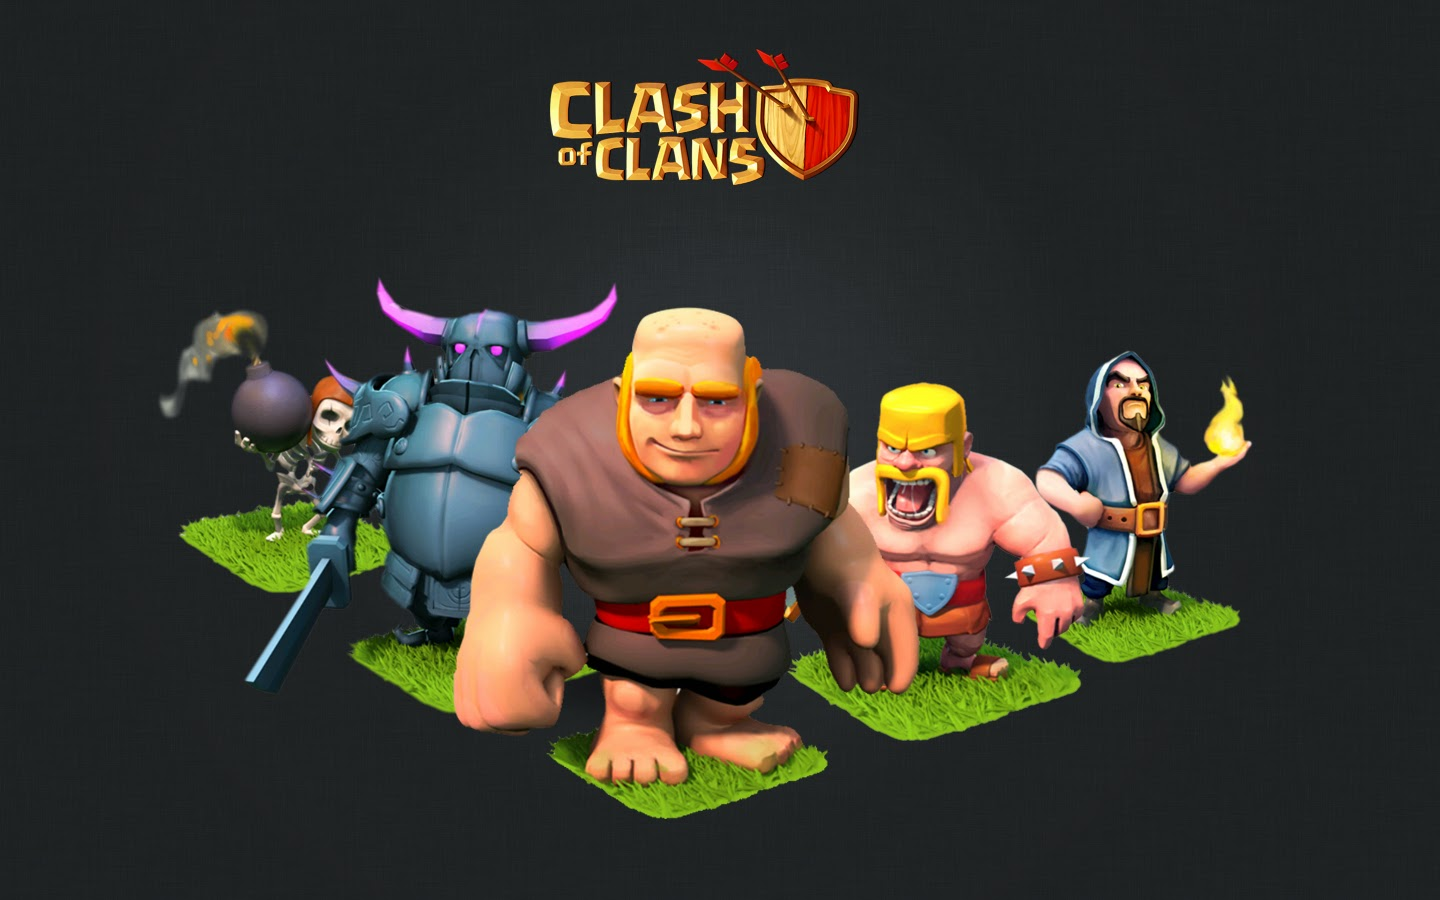 Clash of Clans Wallpaper Background px 1440x900